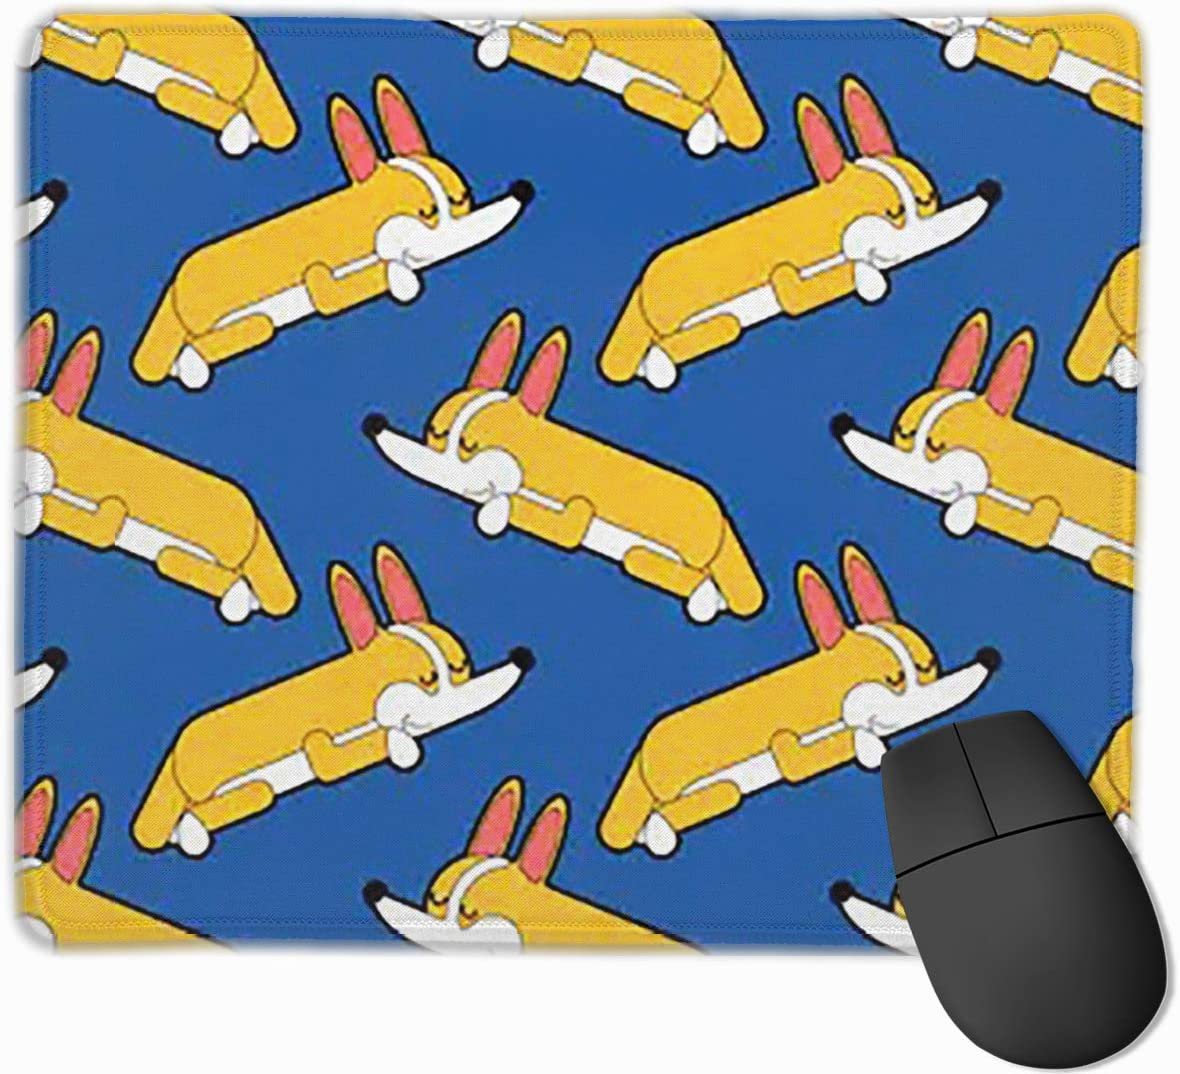 Joyce-life Corgi Sleeping Pattern Asleep Mouse Pads for Computers Laptop Non-Slip Rubber Base Stitched Edge Waterproof Office Mouse Pad Office Gaming Computer at Home Or Work Size 2530